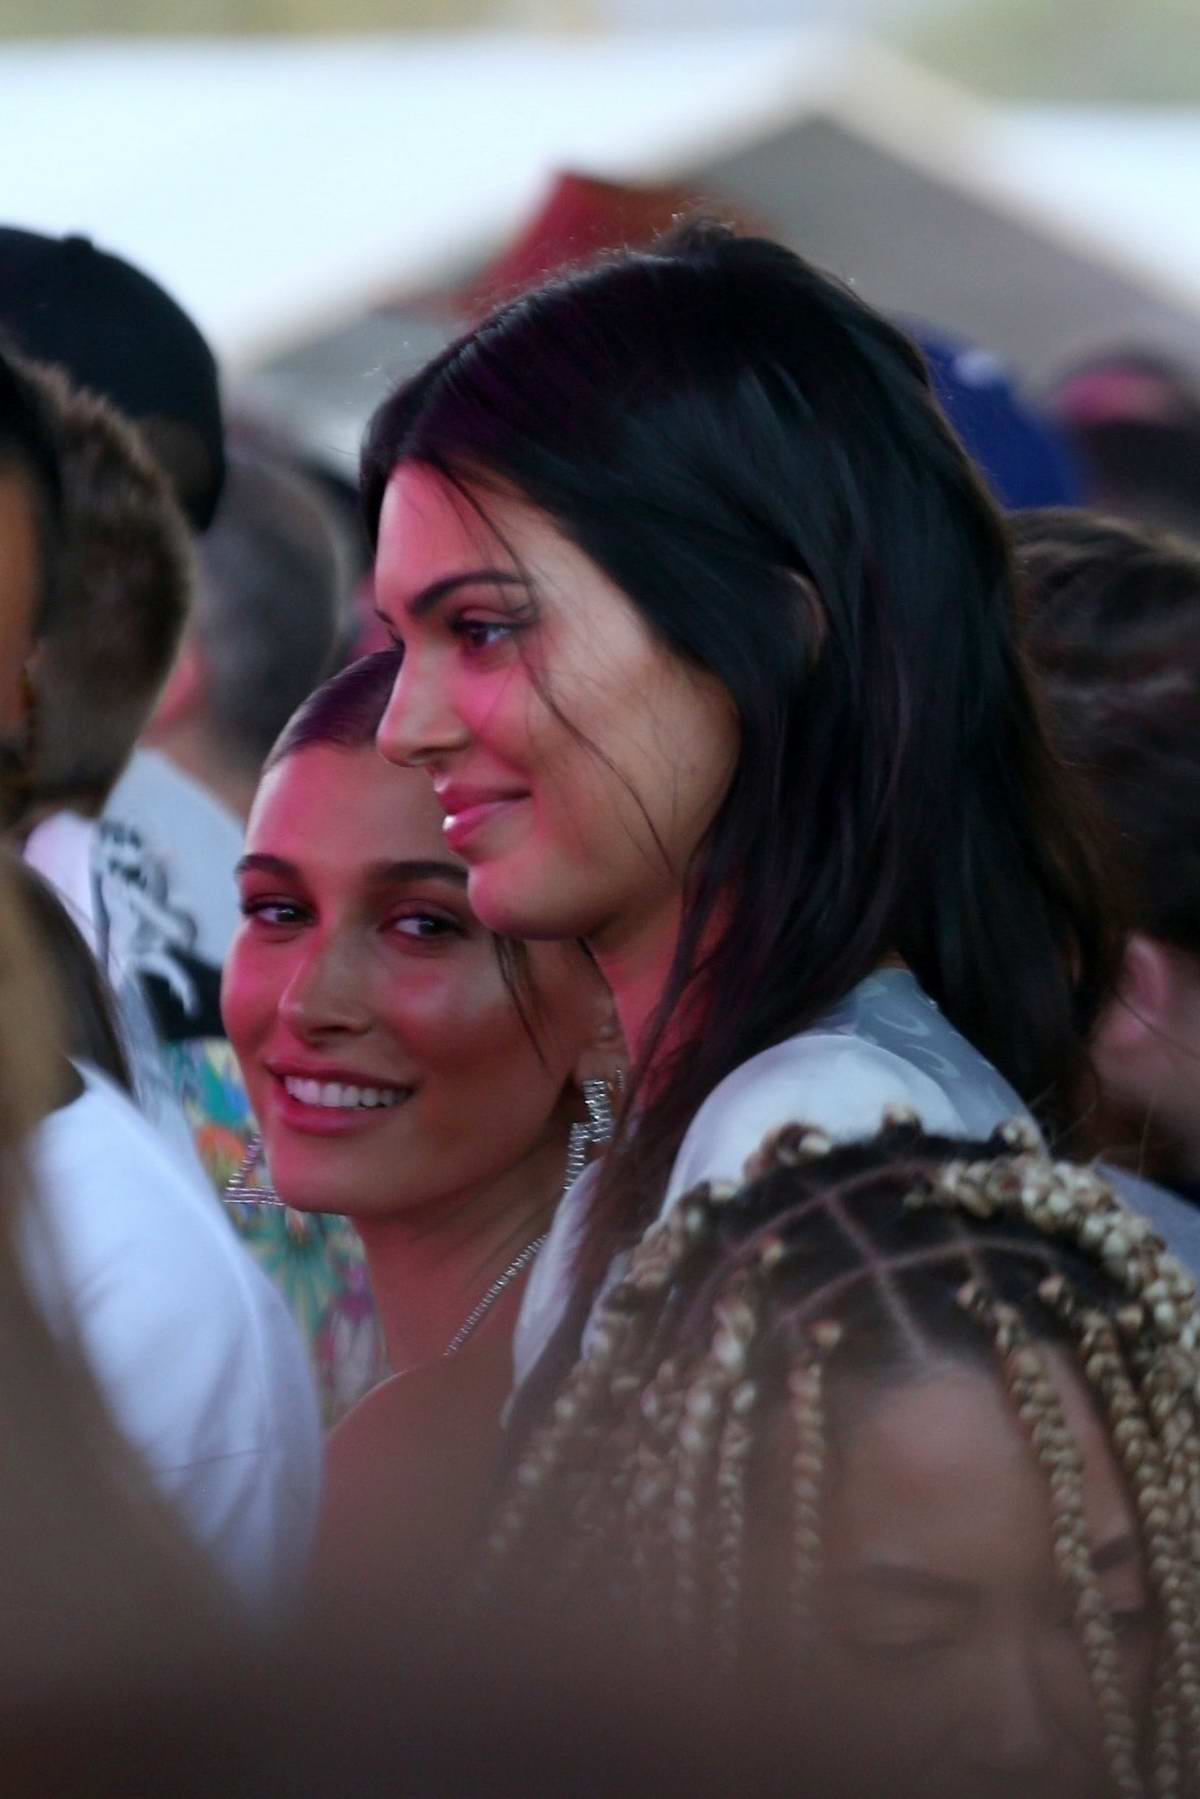 Hailey Baldwin Bieber and Kendall Jenner spotted at the Coachella in Indio, California